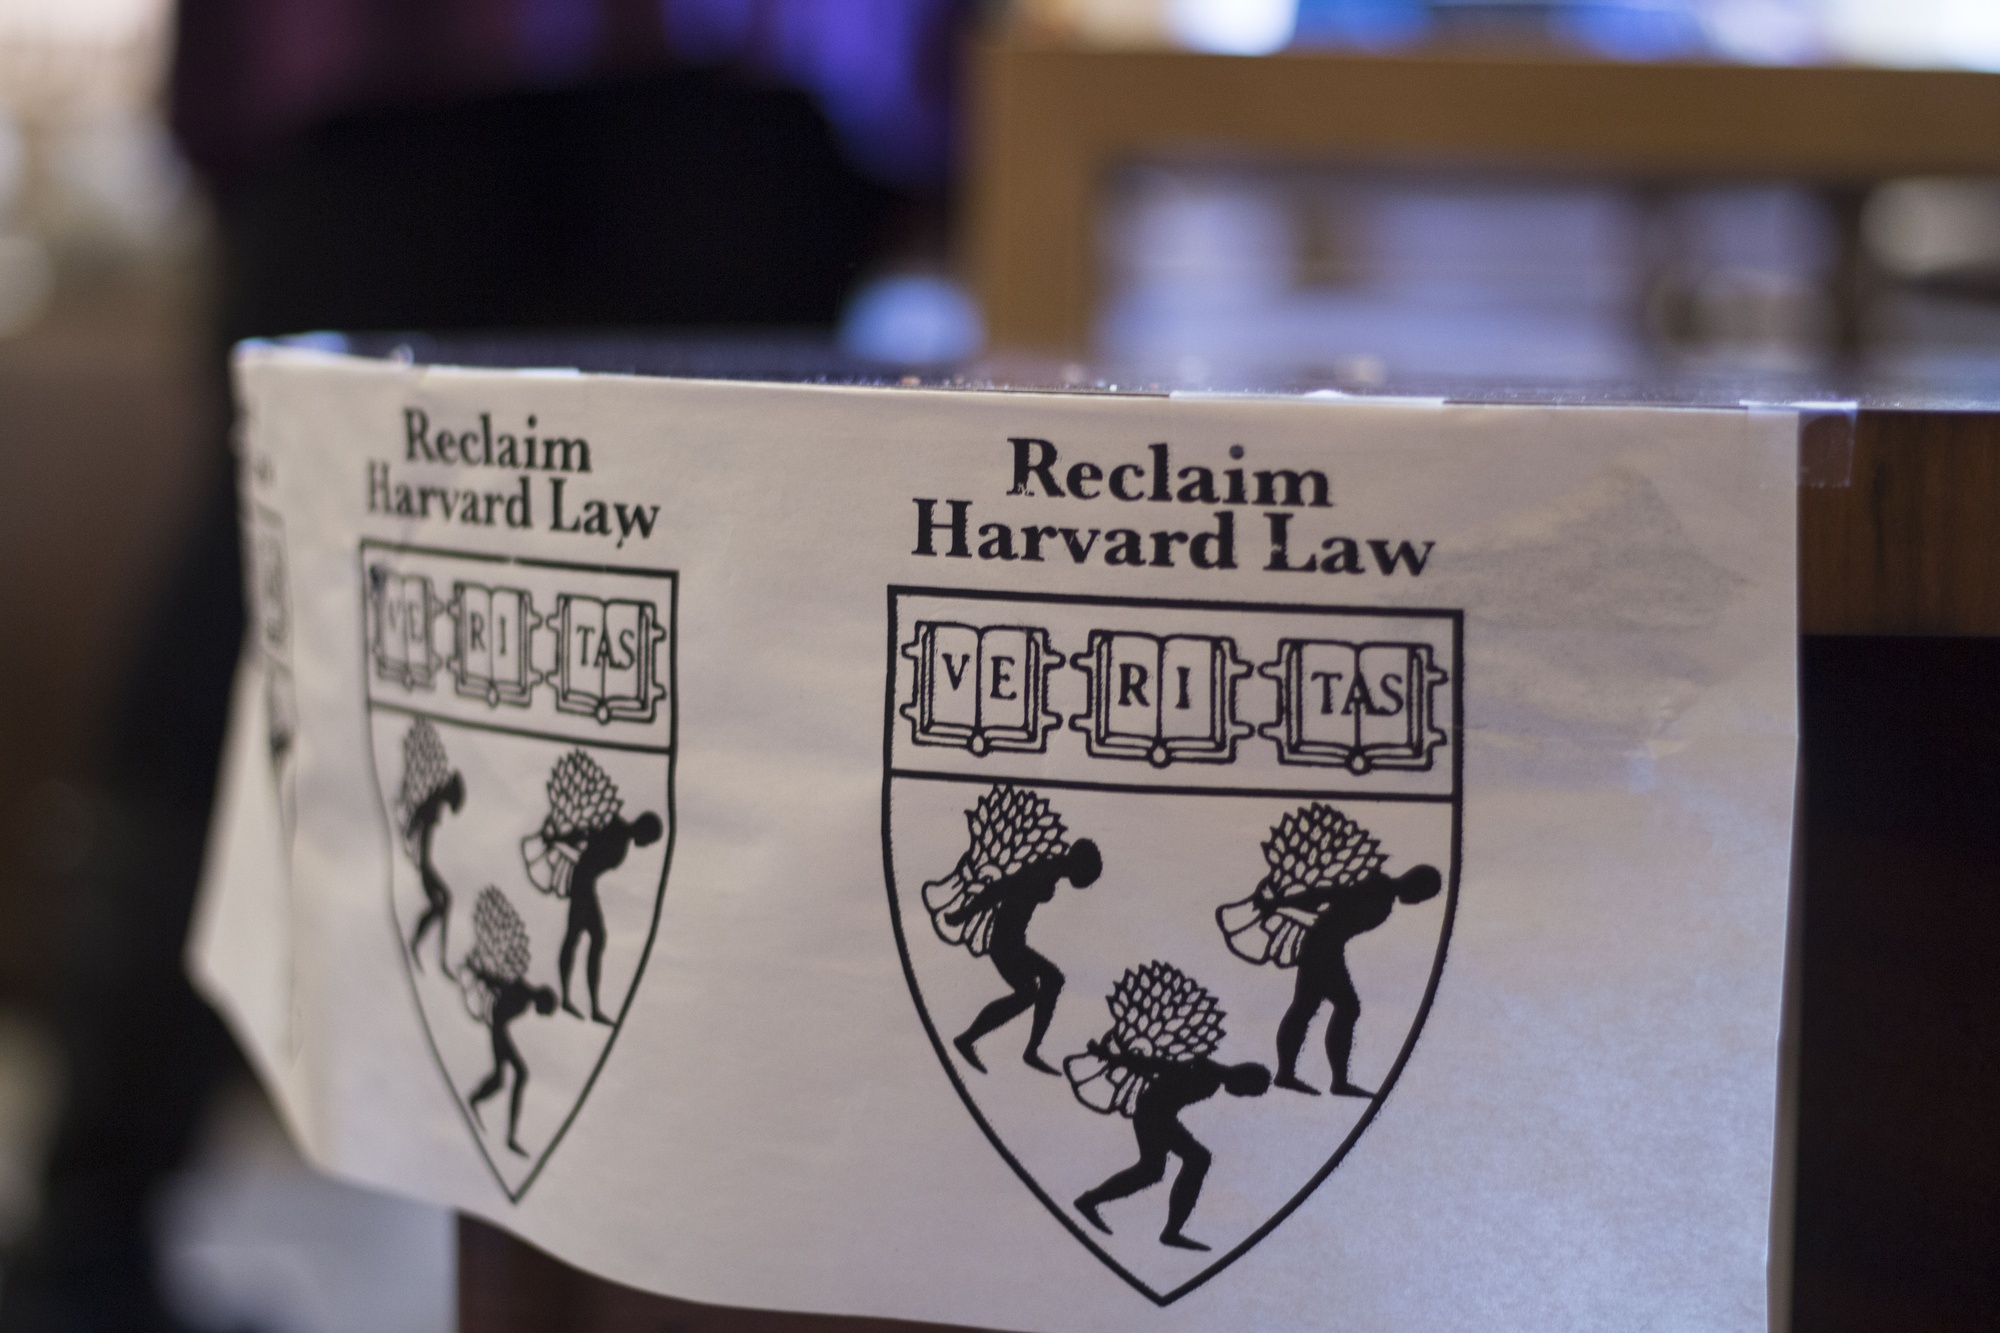 Harvard Law School students put up posters in the WCC on Tuesday afternoon as part of Reclaim Harvard Law's occupation.